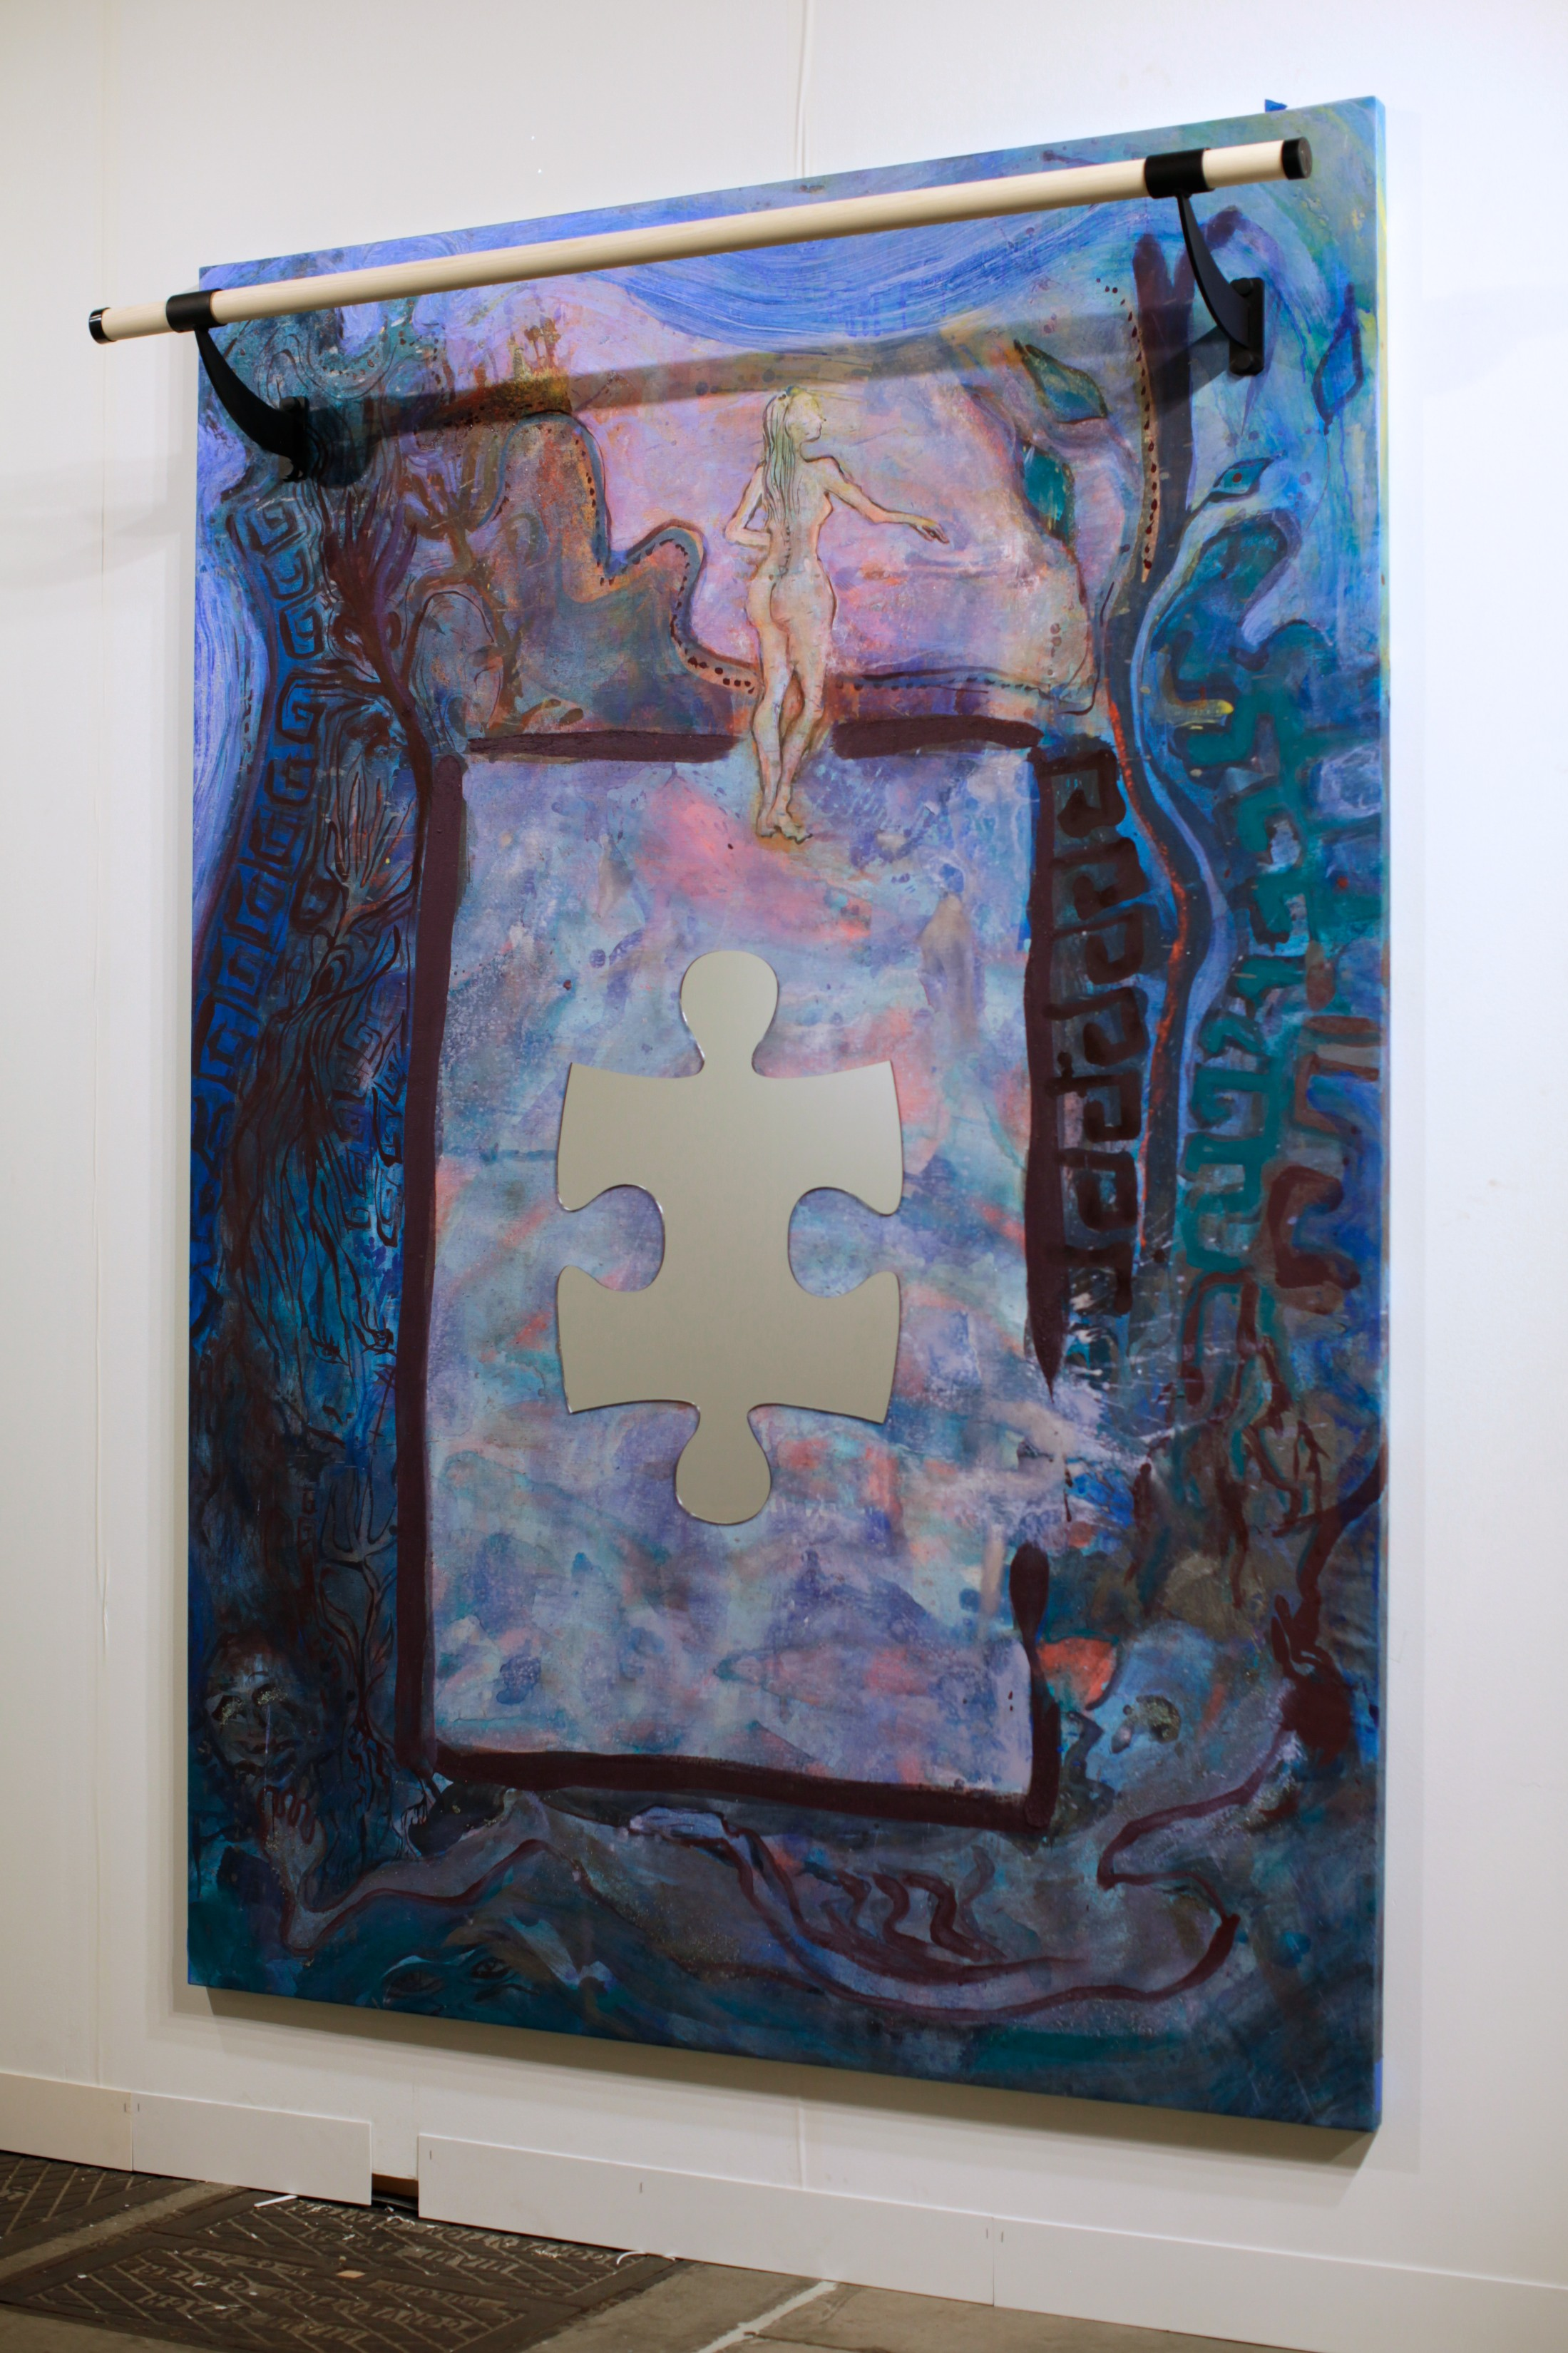 #Puzzled, 7x5 feet, acrylic, mirrored plexiglass, ballet barre on linen, 2014